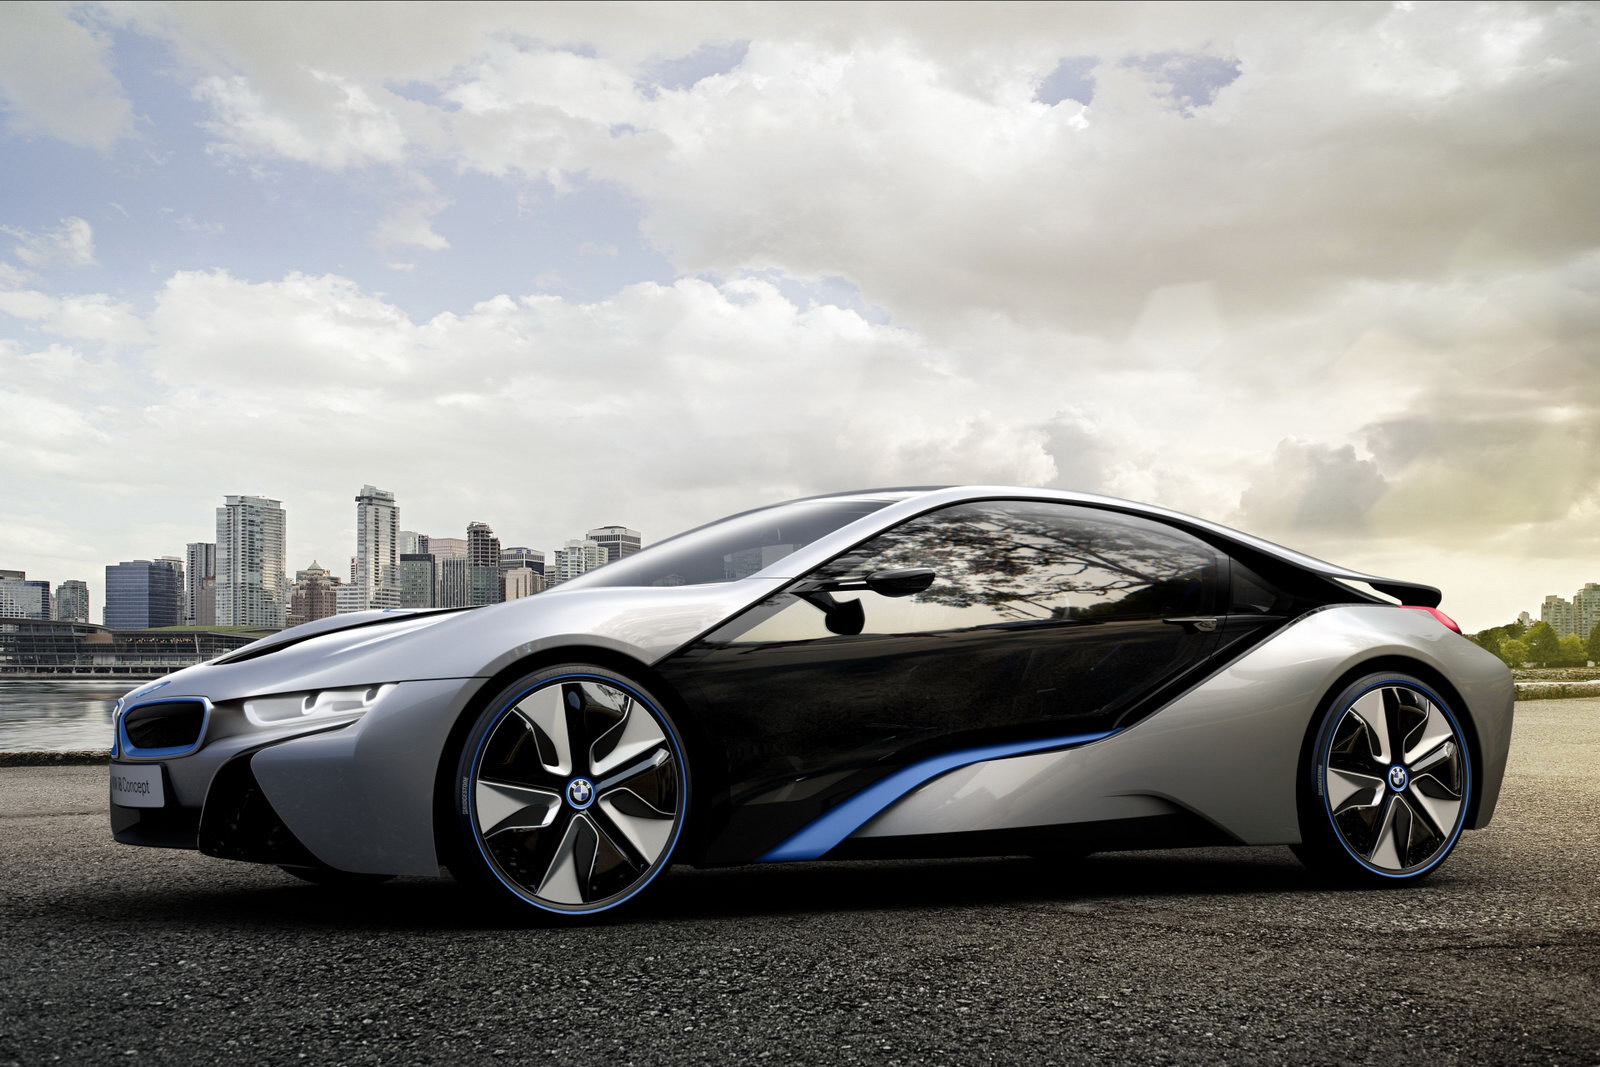 2013 BMW I8 CONCEPT CAR 4 BMW ANNOUNCES IT UPCOMING I8 CONCEPT CAR TO BE UNVEILED IN 2013